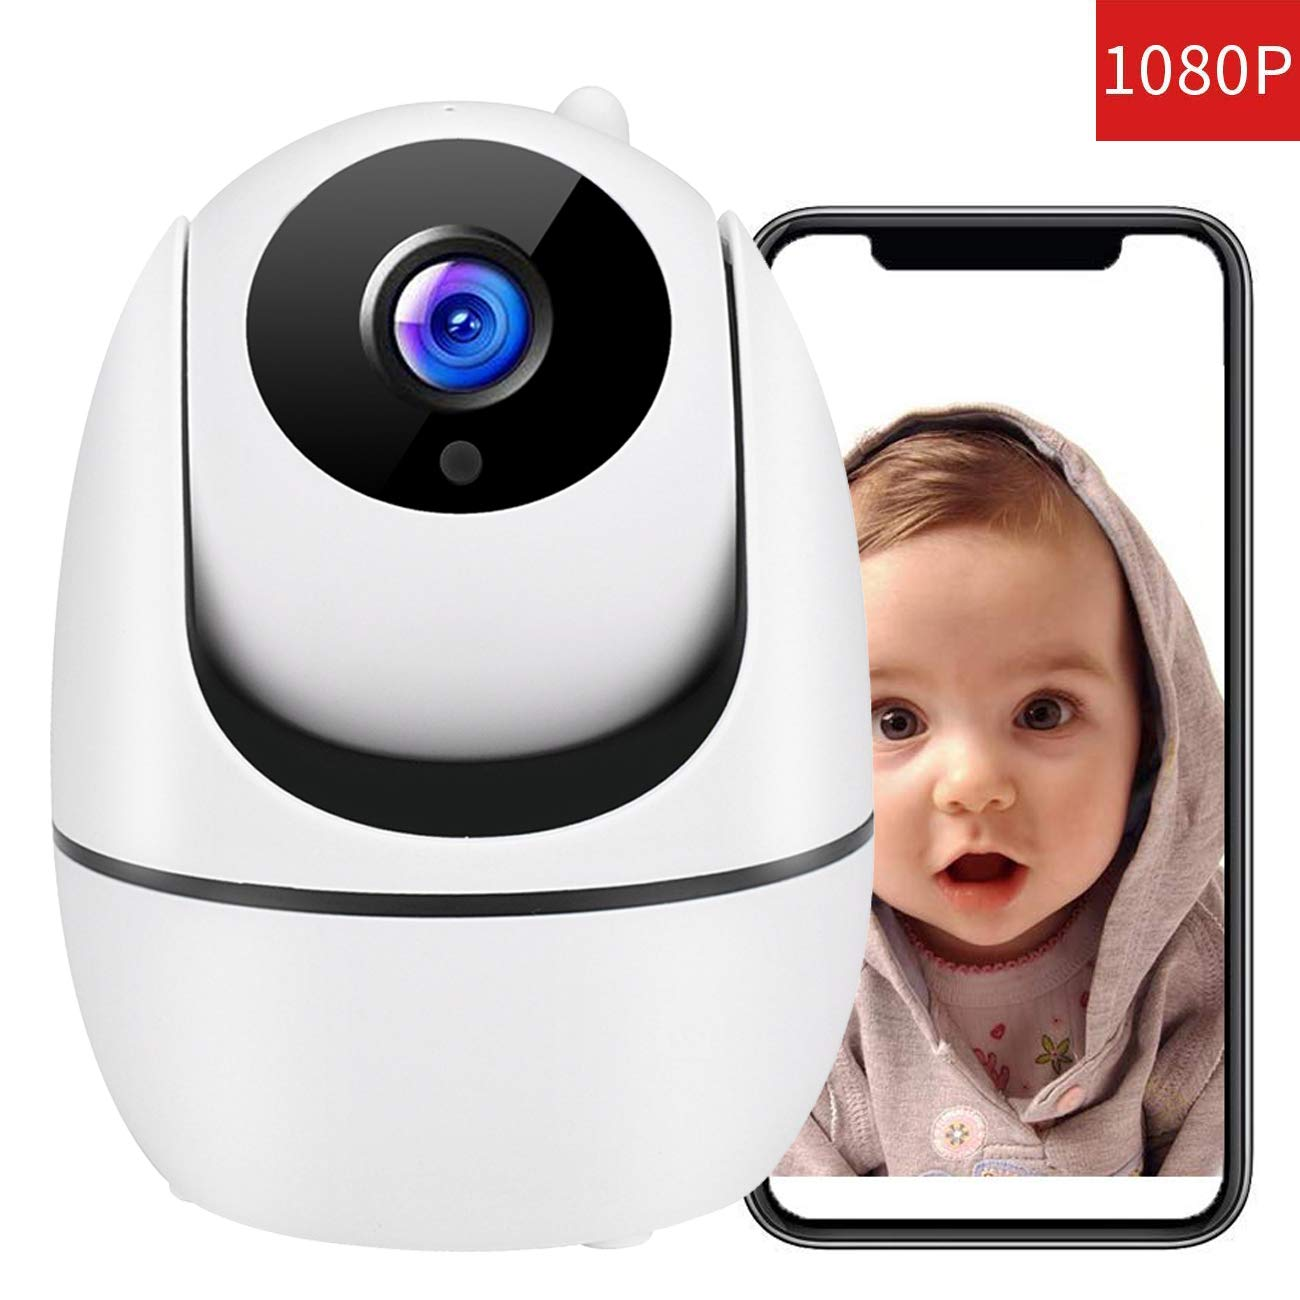 Baby Monitor 1080P FHD Home WiFi Security Camera Sound with Night Vision 2-Way Audio Automatic Person Tracking Available Monitor Baby Elder Pet Compatible with iOS Android White